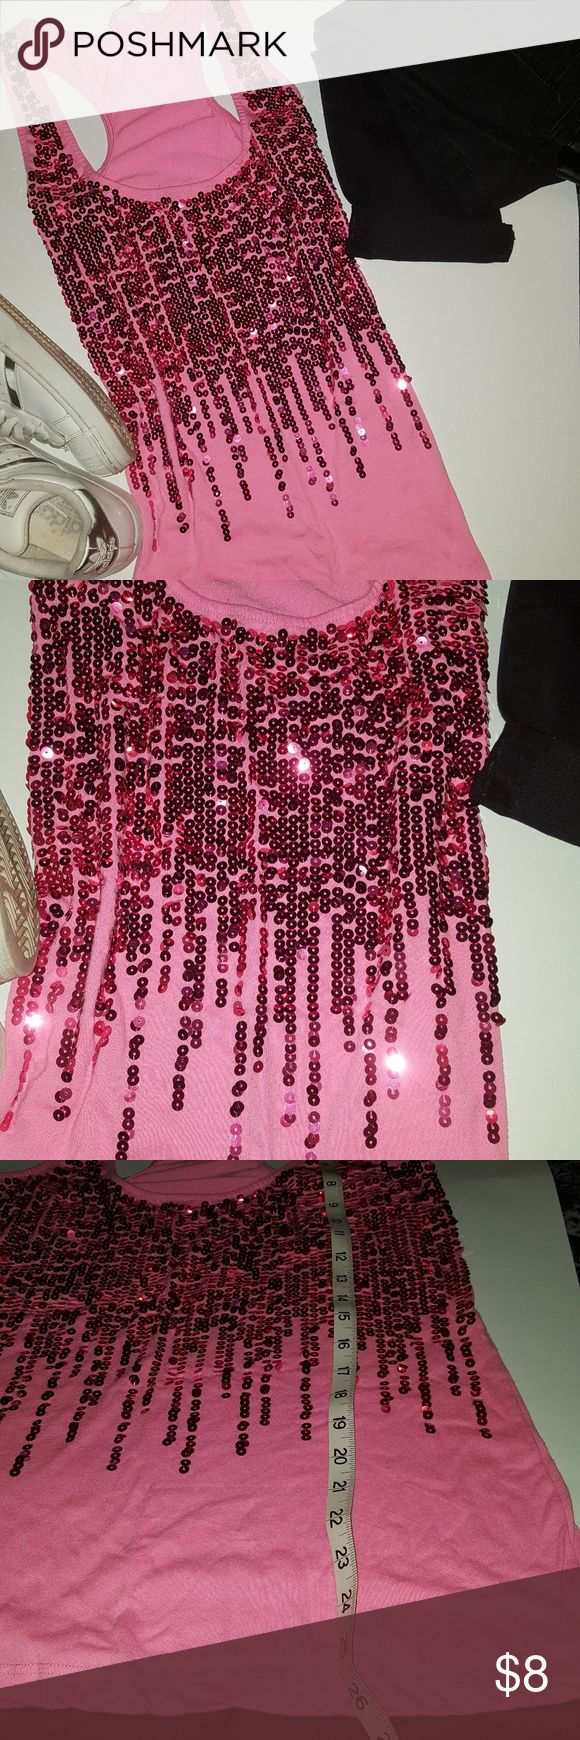 pink sequin tank top pink sequin tank top size 1X  in good condition no stains no holes Tops Tank Tops